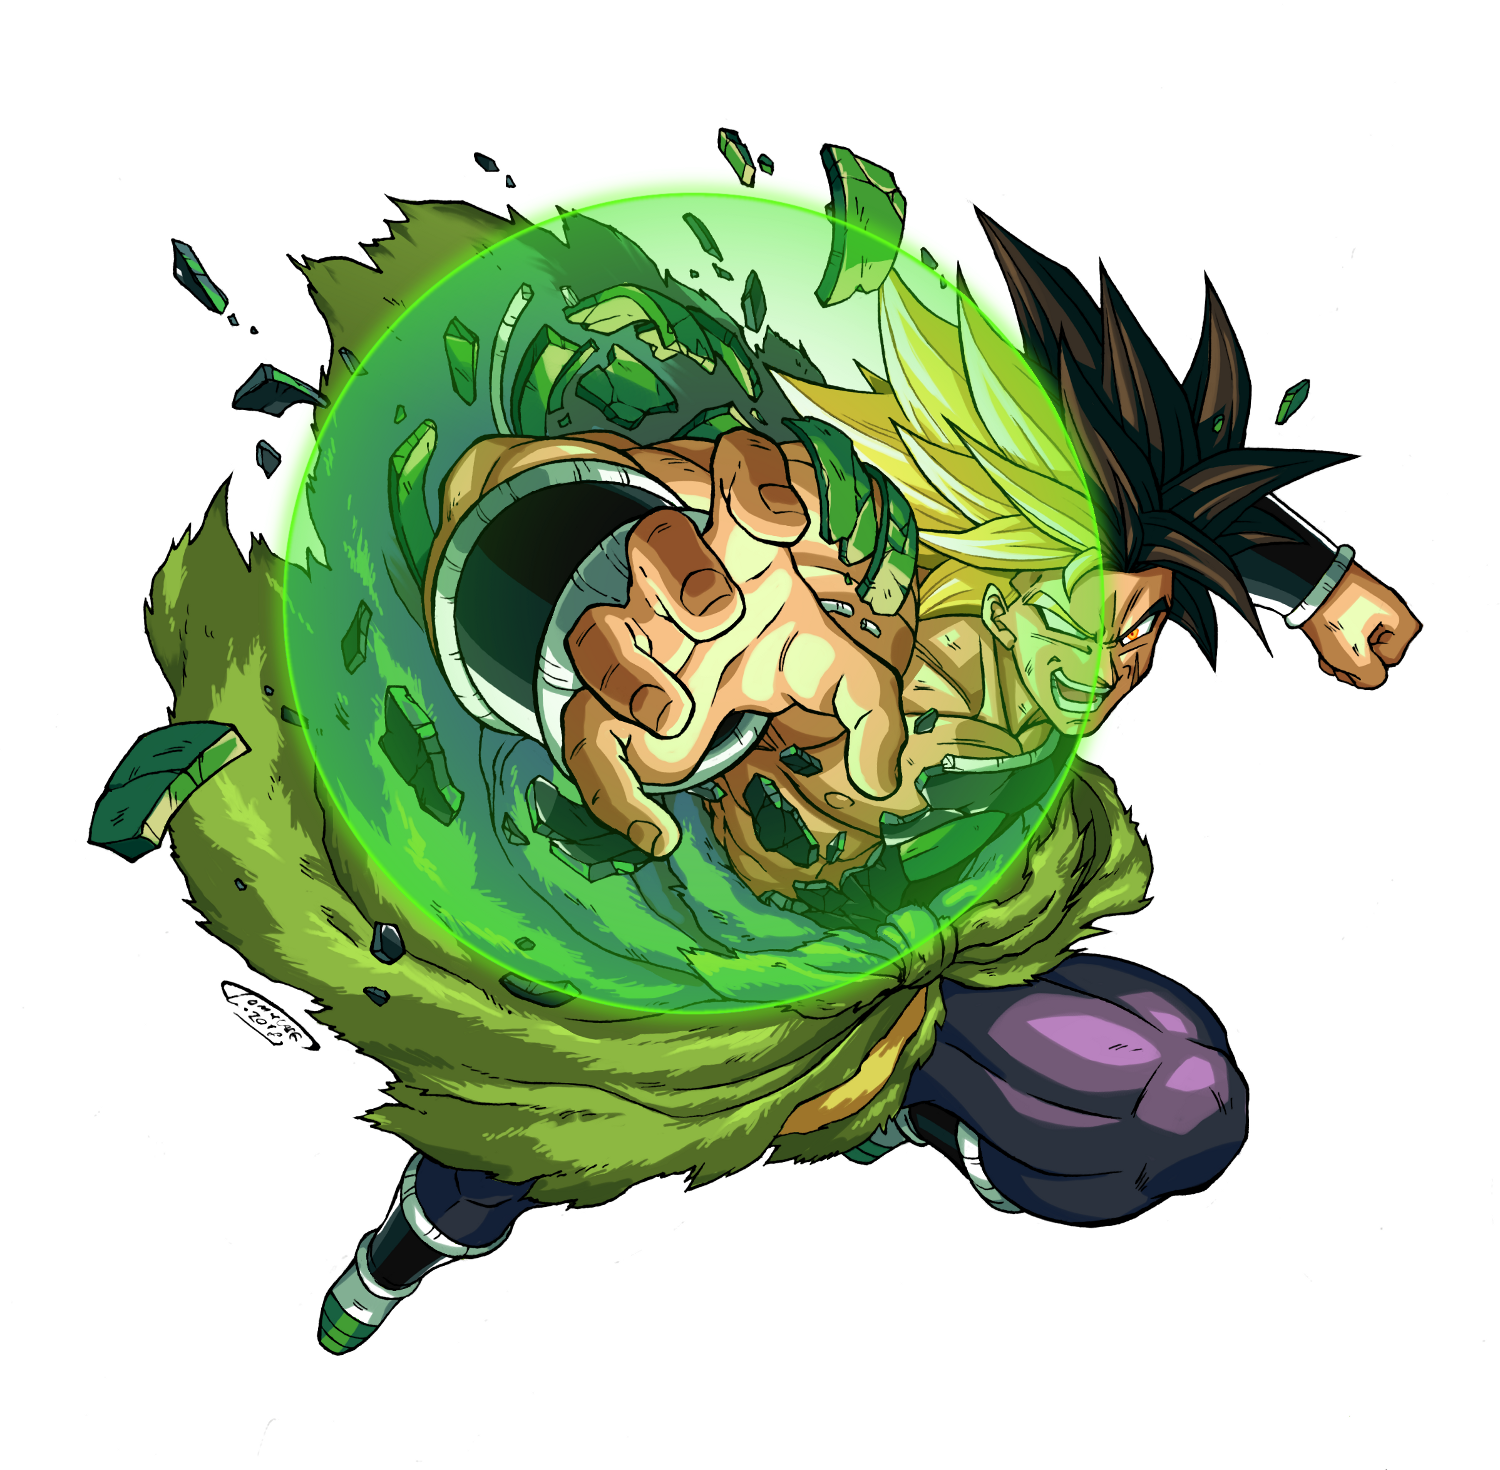 Dragon ball super broly clipart clipart black and white stock Broly - DRAGON BALL - Image #2369943 - Zerochan Anime Image Board clipart black and white stock